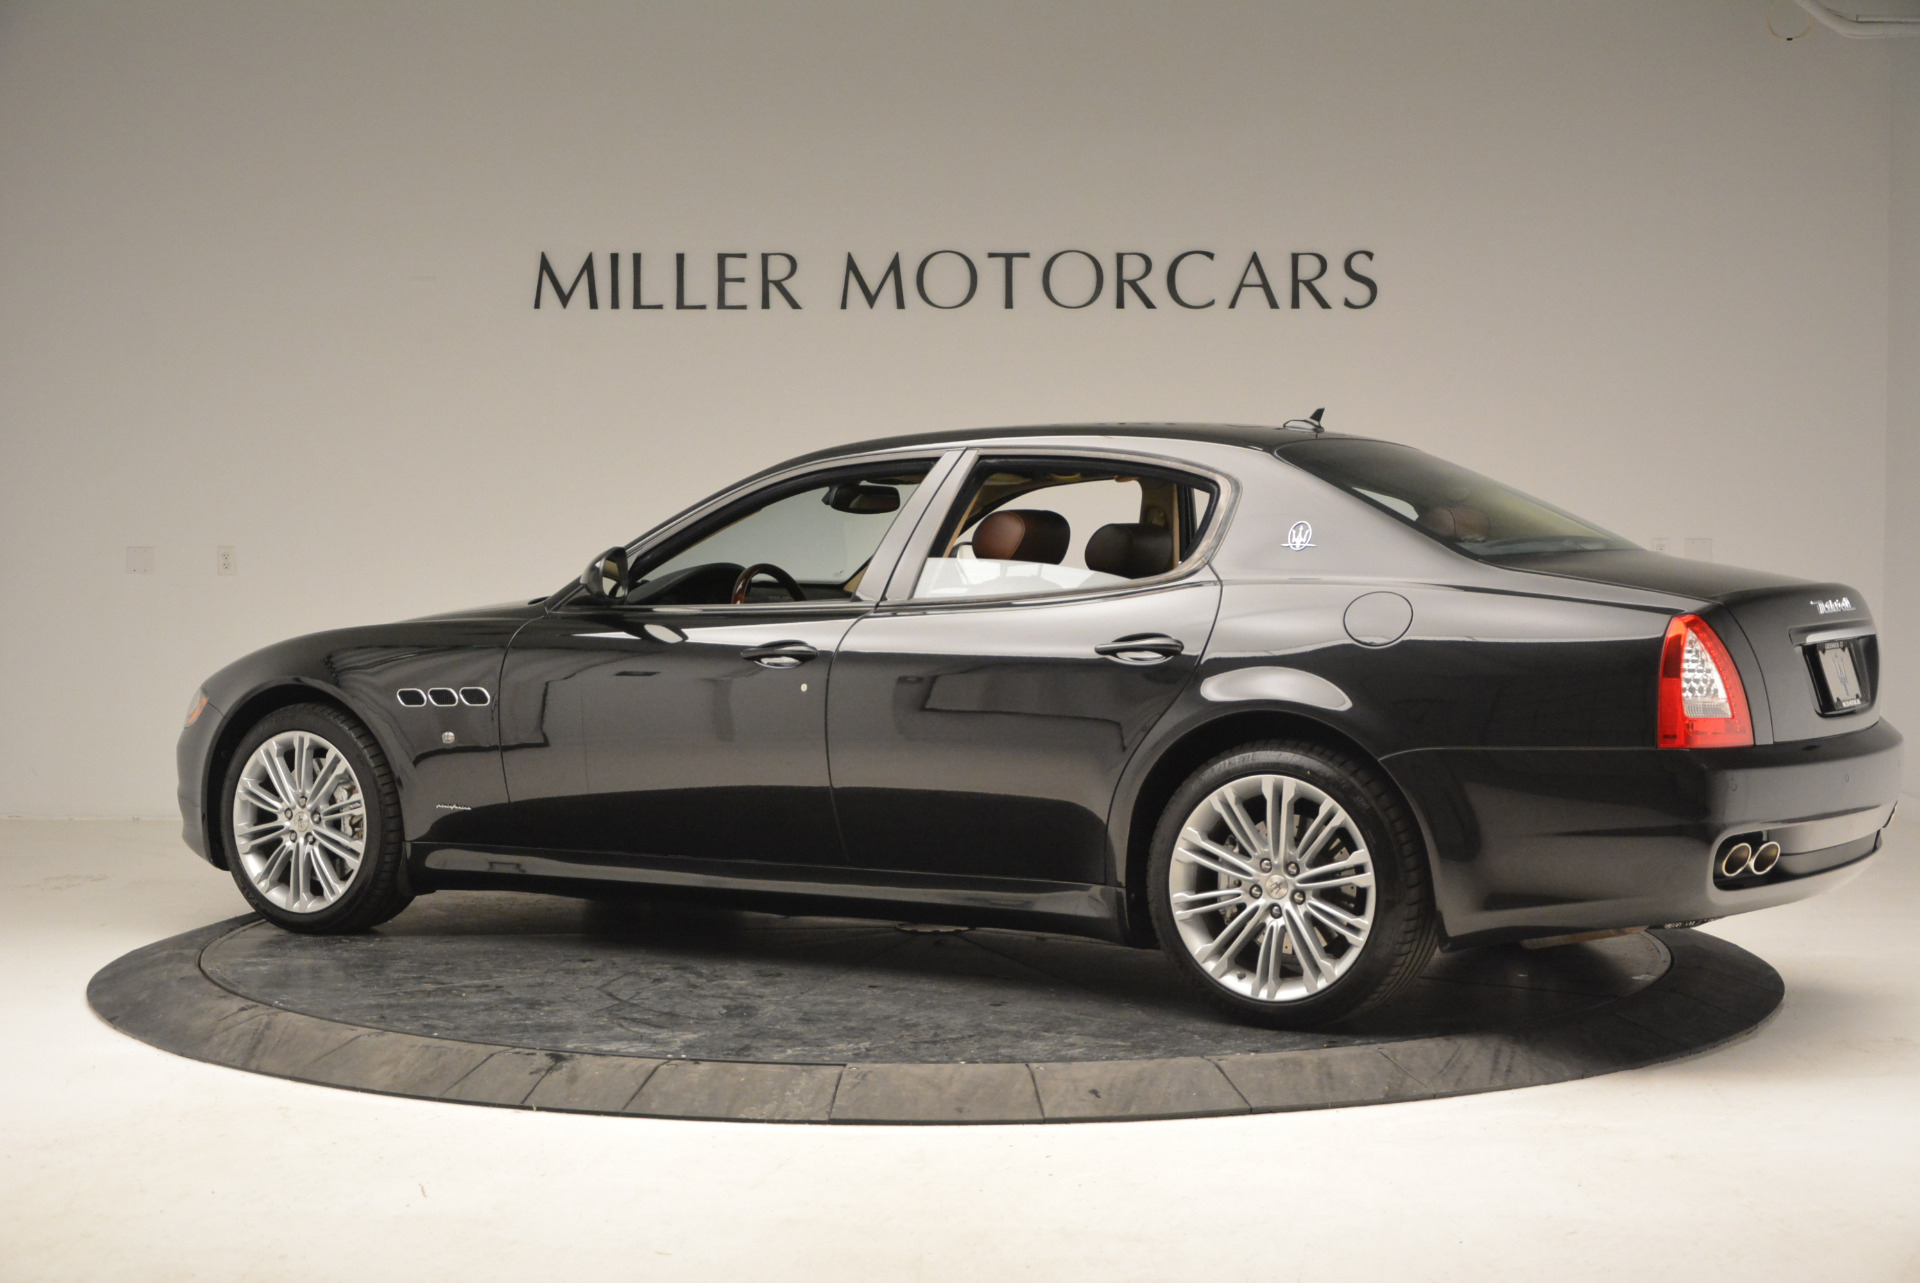 Used 2013 Maserati Quattroporte S For Sale In Westport, CT 1012_p4